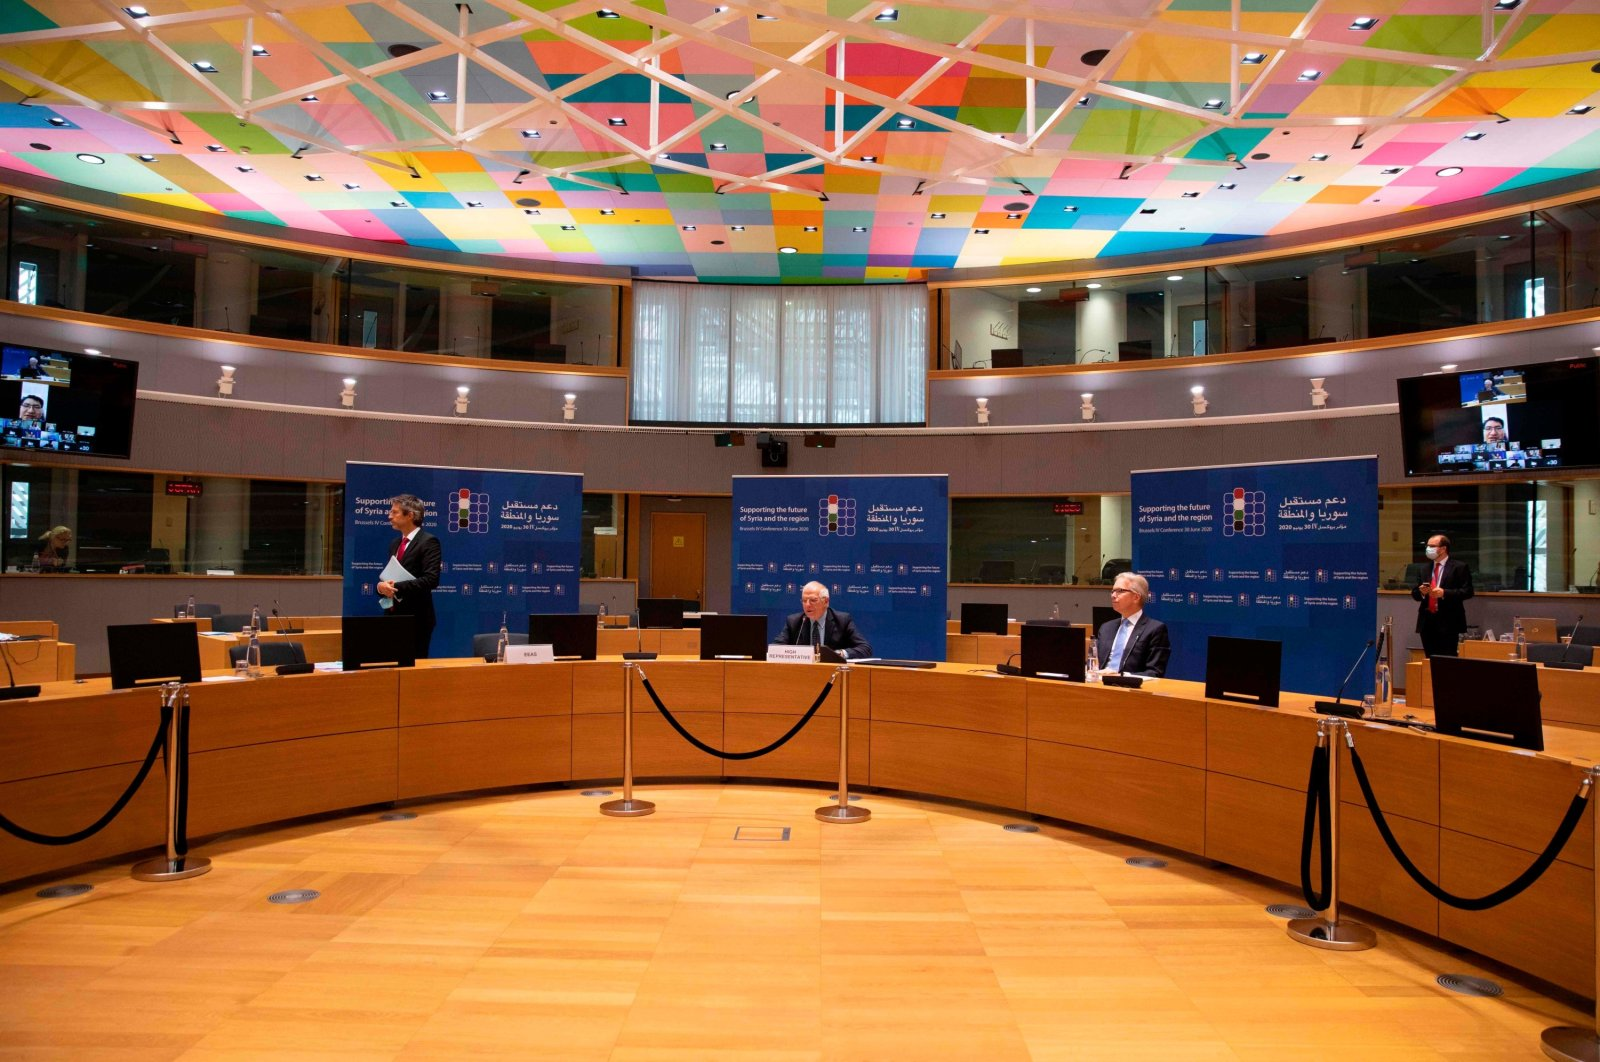 European Union foreign policy chief Josep Borrell addresses a meeting on aid for Syria, in videoconference format at the European Council building in Brussels, Belgium, June 30, 2020. (AFP Photo)